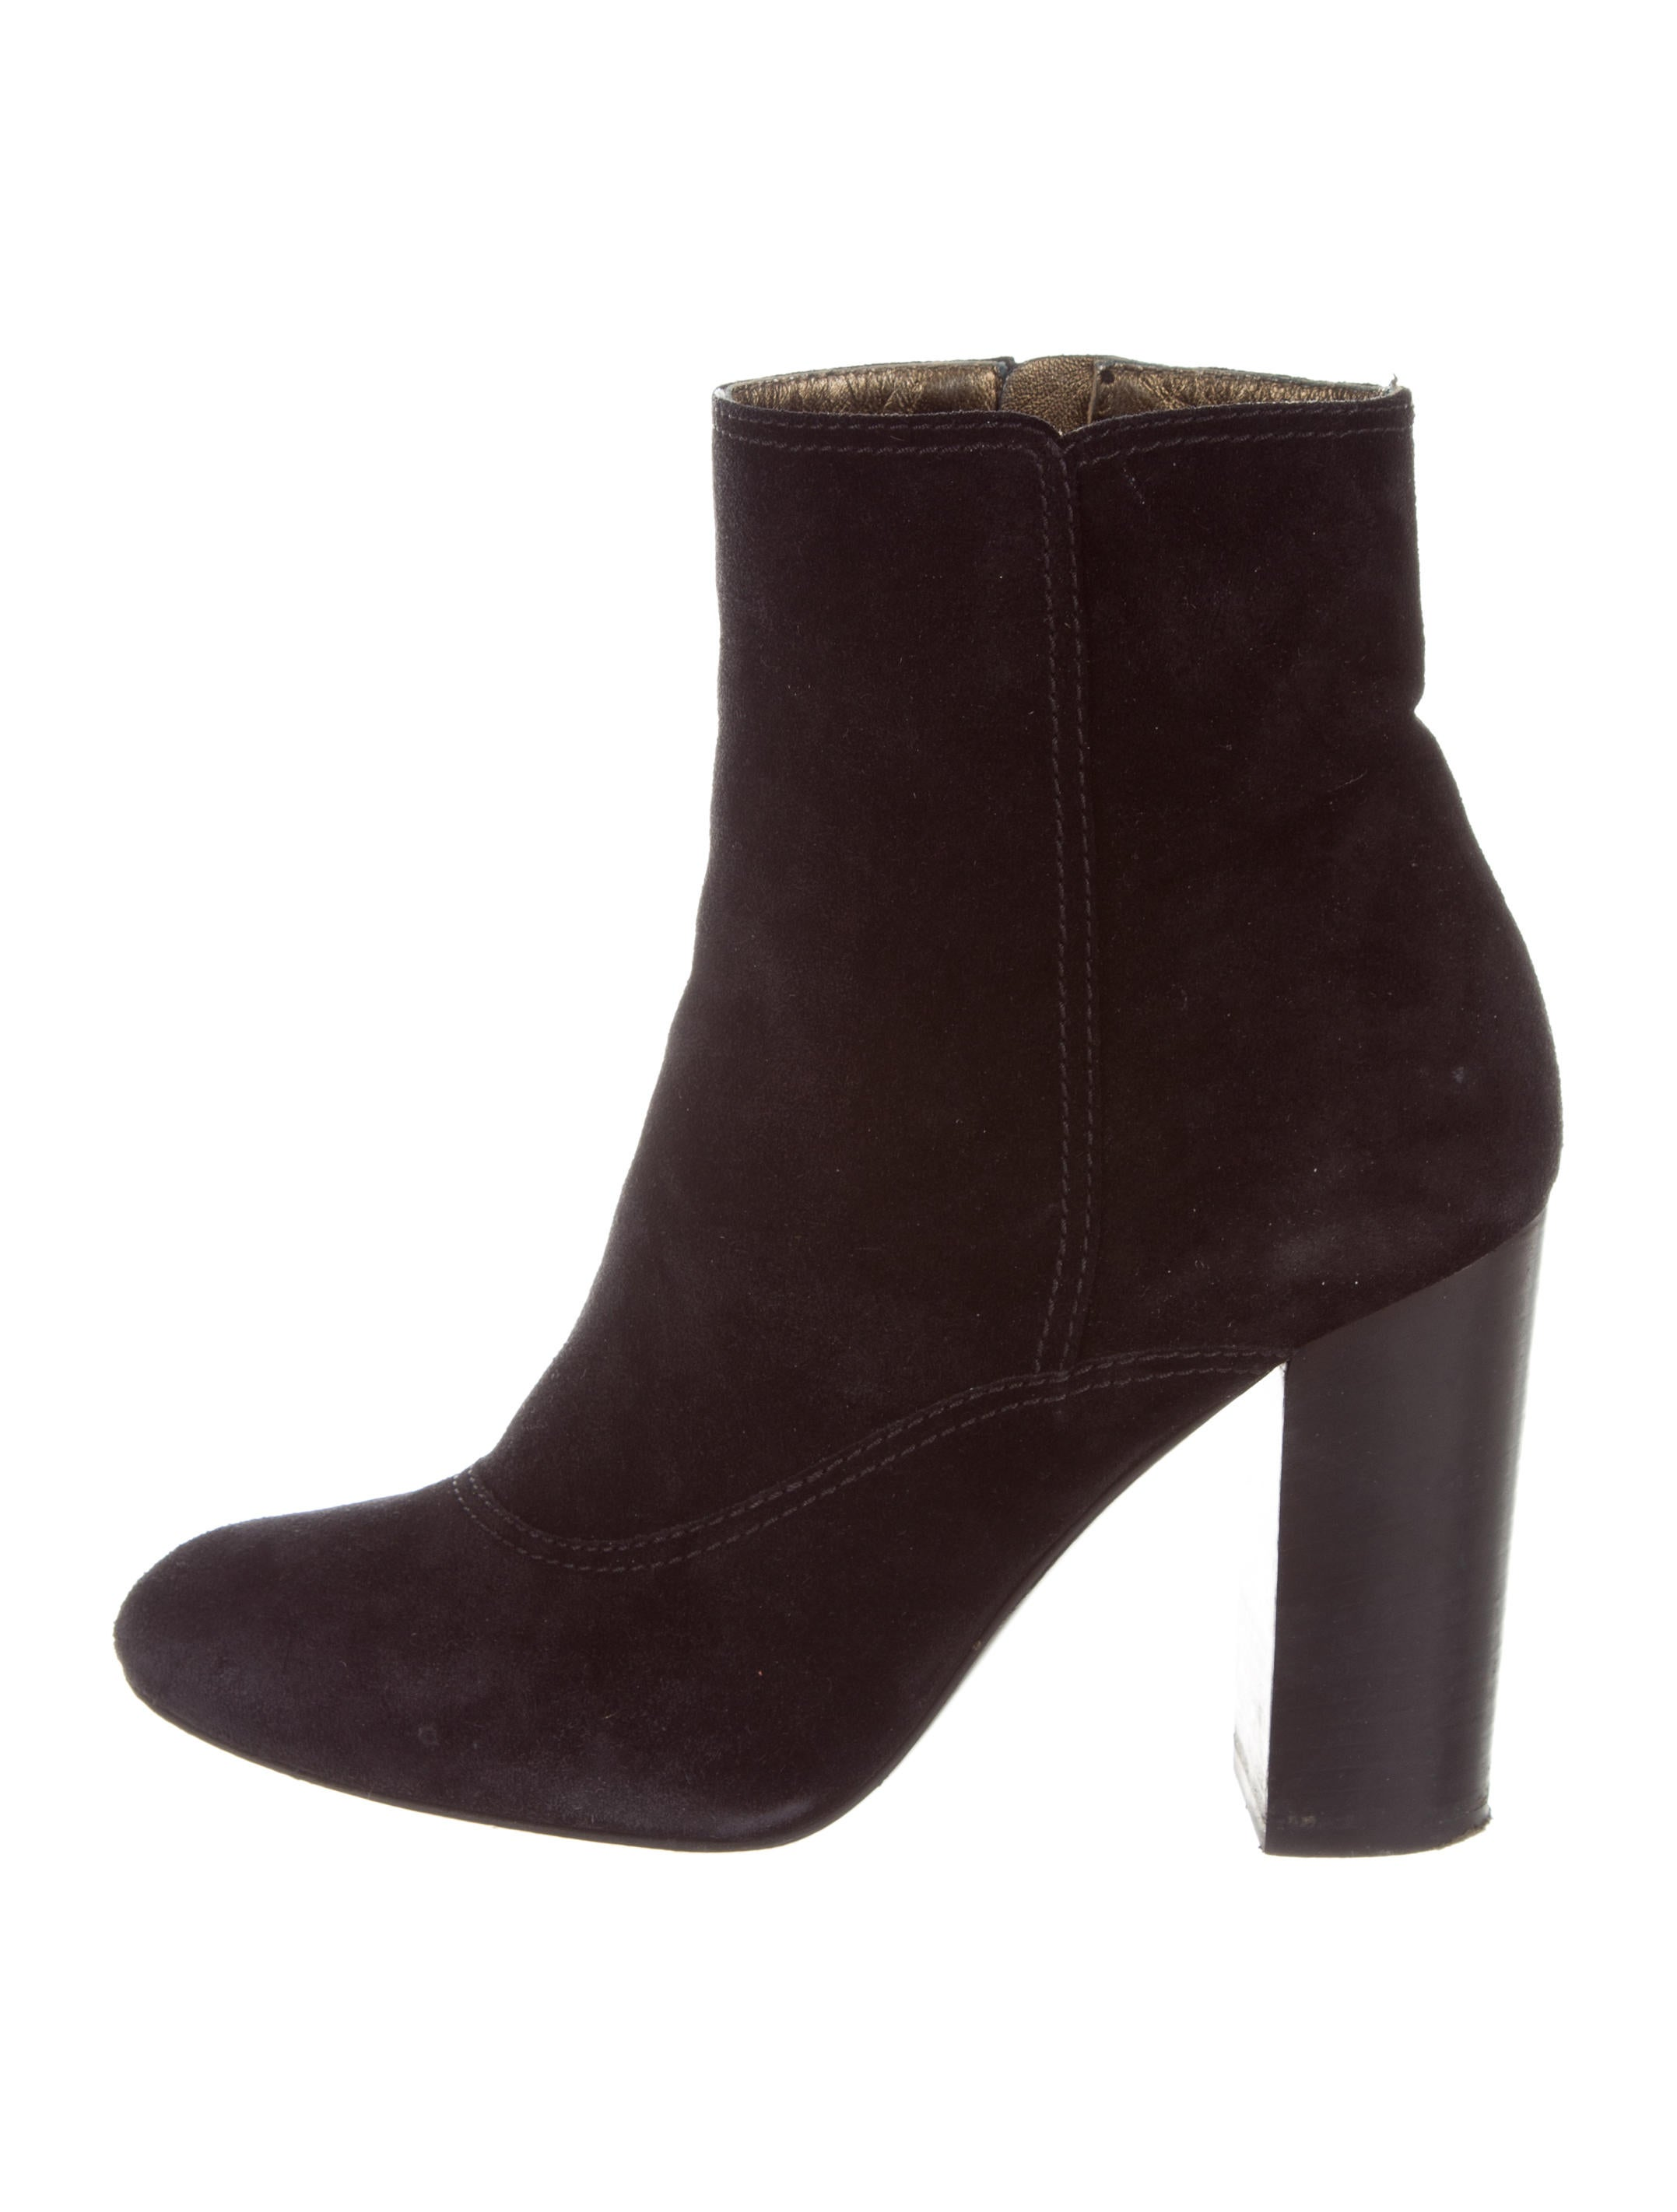 Lanvin Suede Pointed-Toe Booties countdown package low shipping fee online hh0ga8G